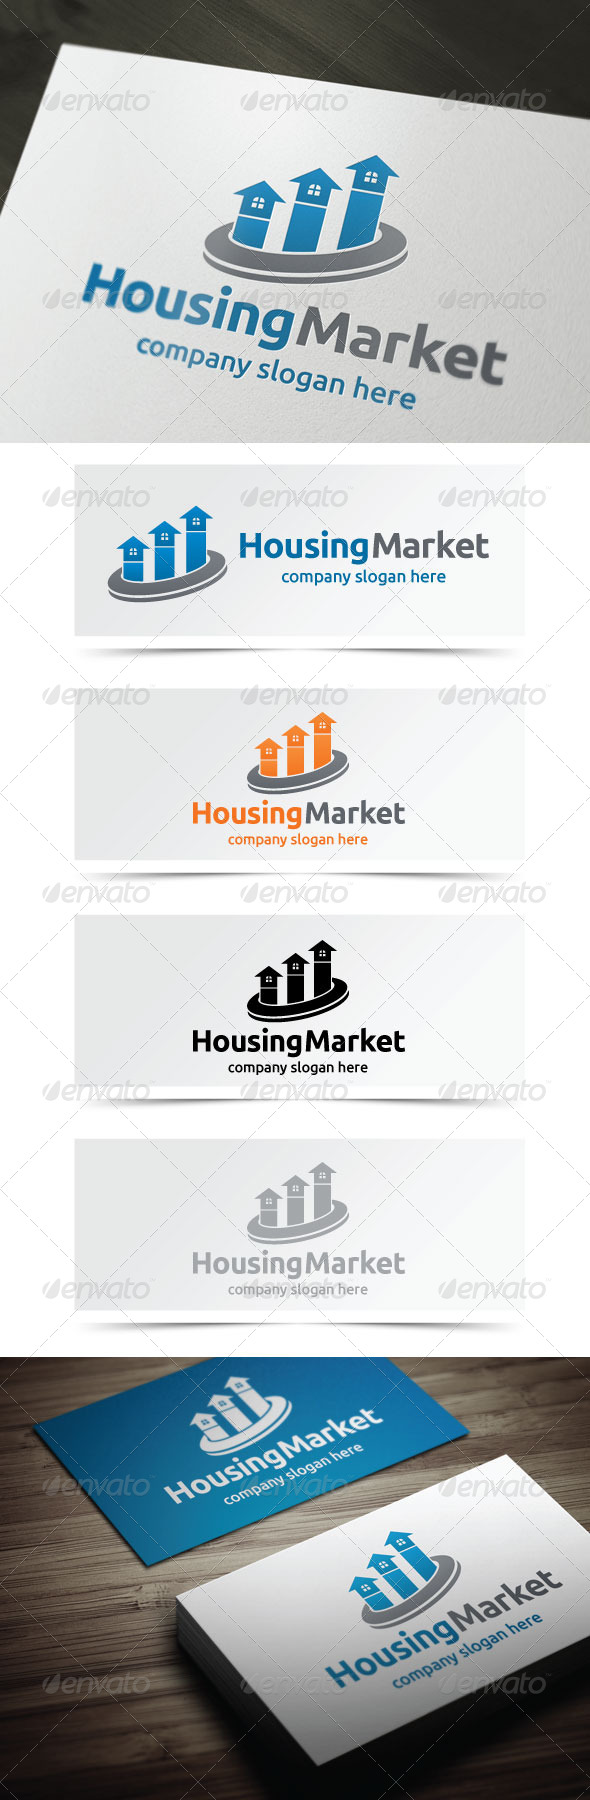 GraphicRiver Housing Market 5255355